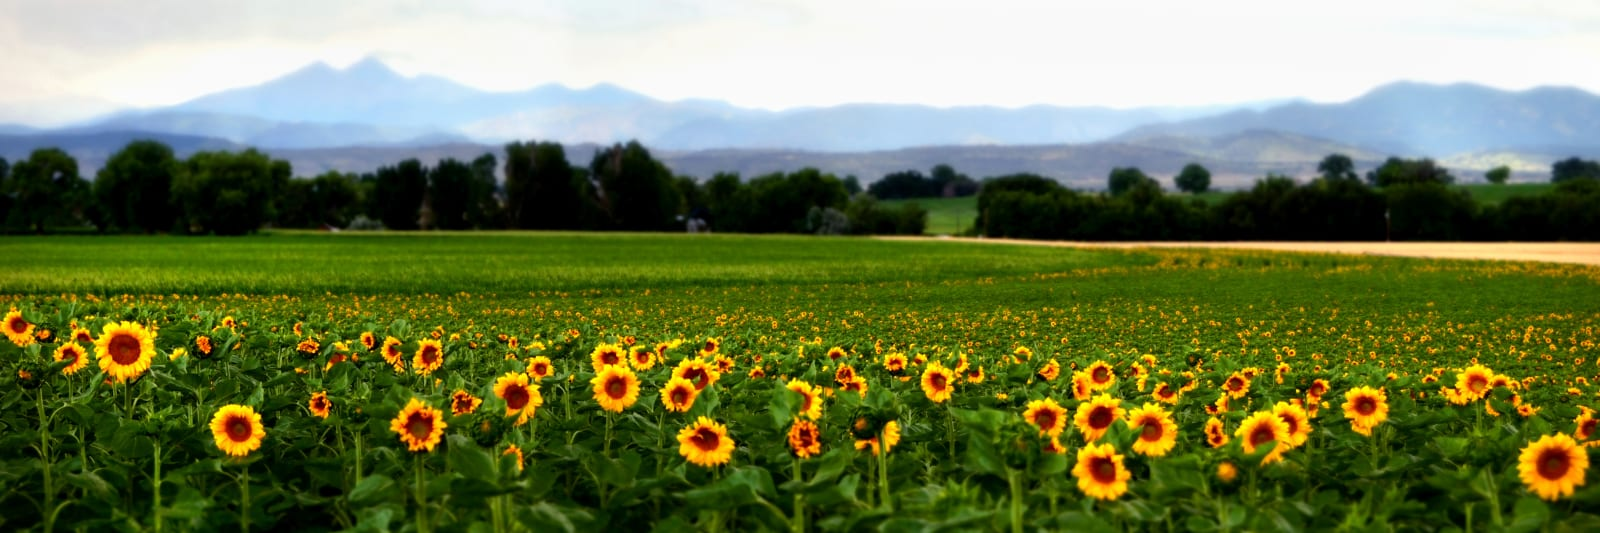 Berthoud Colorado Sunflowers